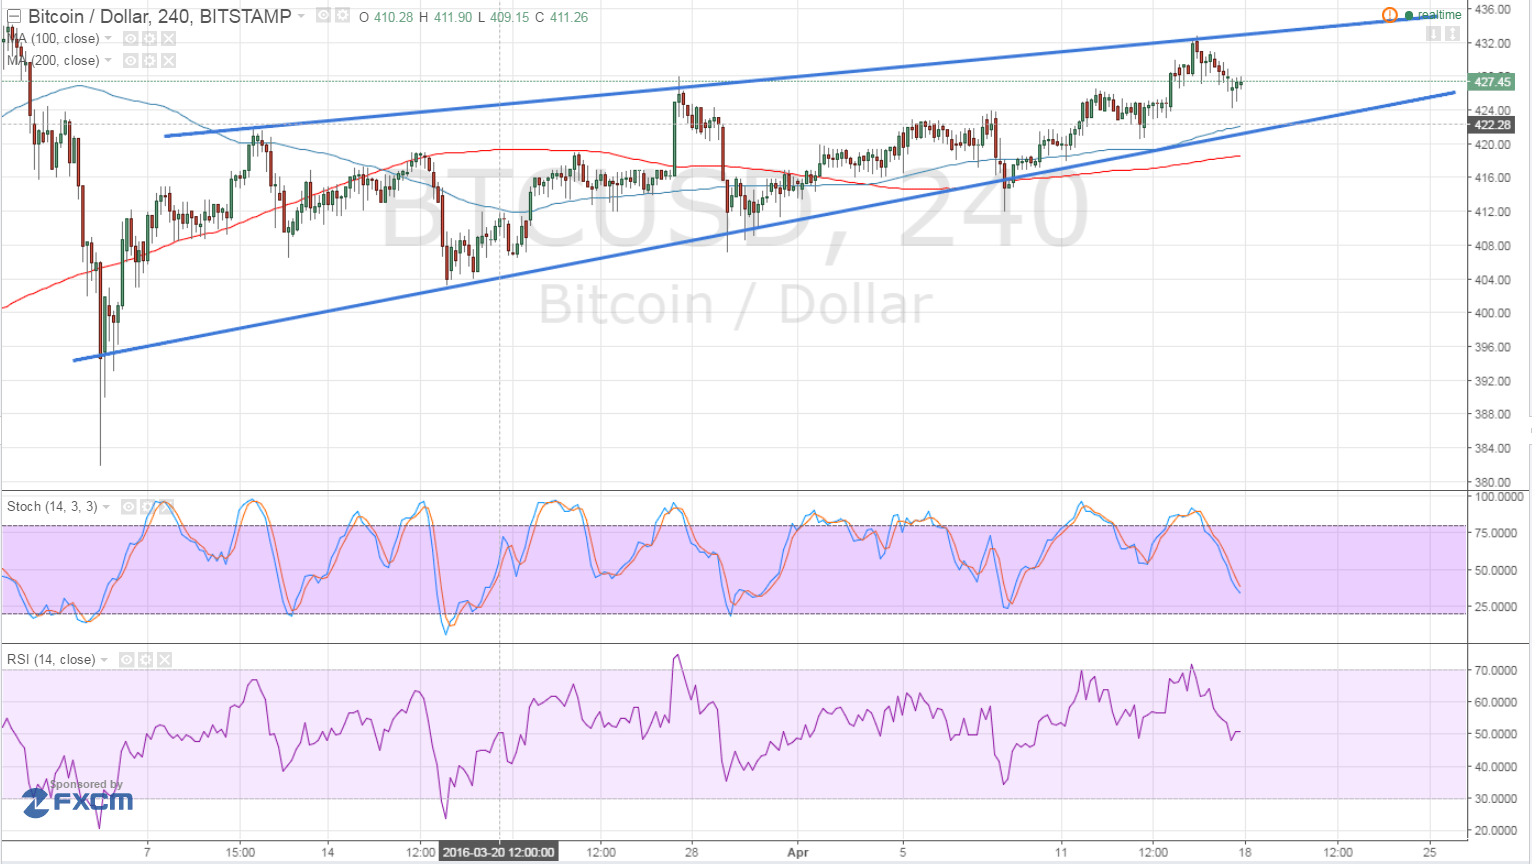 Bitcoin Price Technical Analysis for 04/18/2016 - Rising Wedge Spotted!